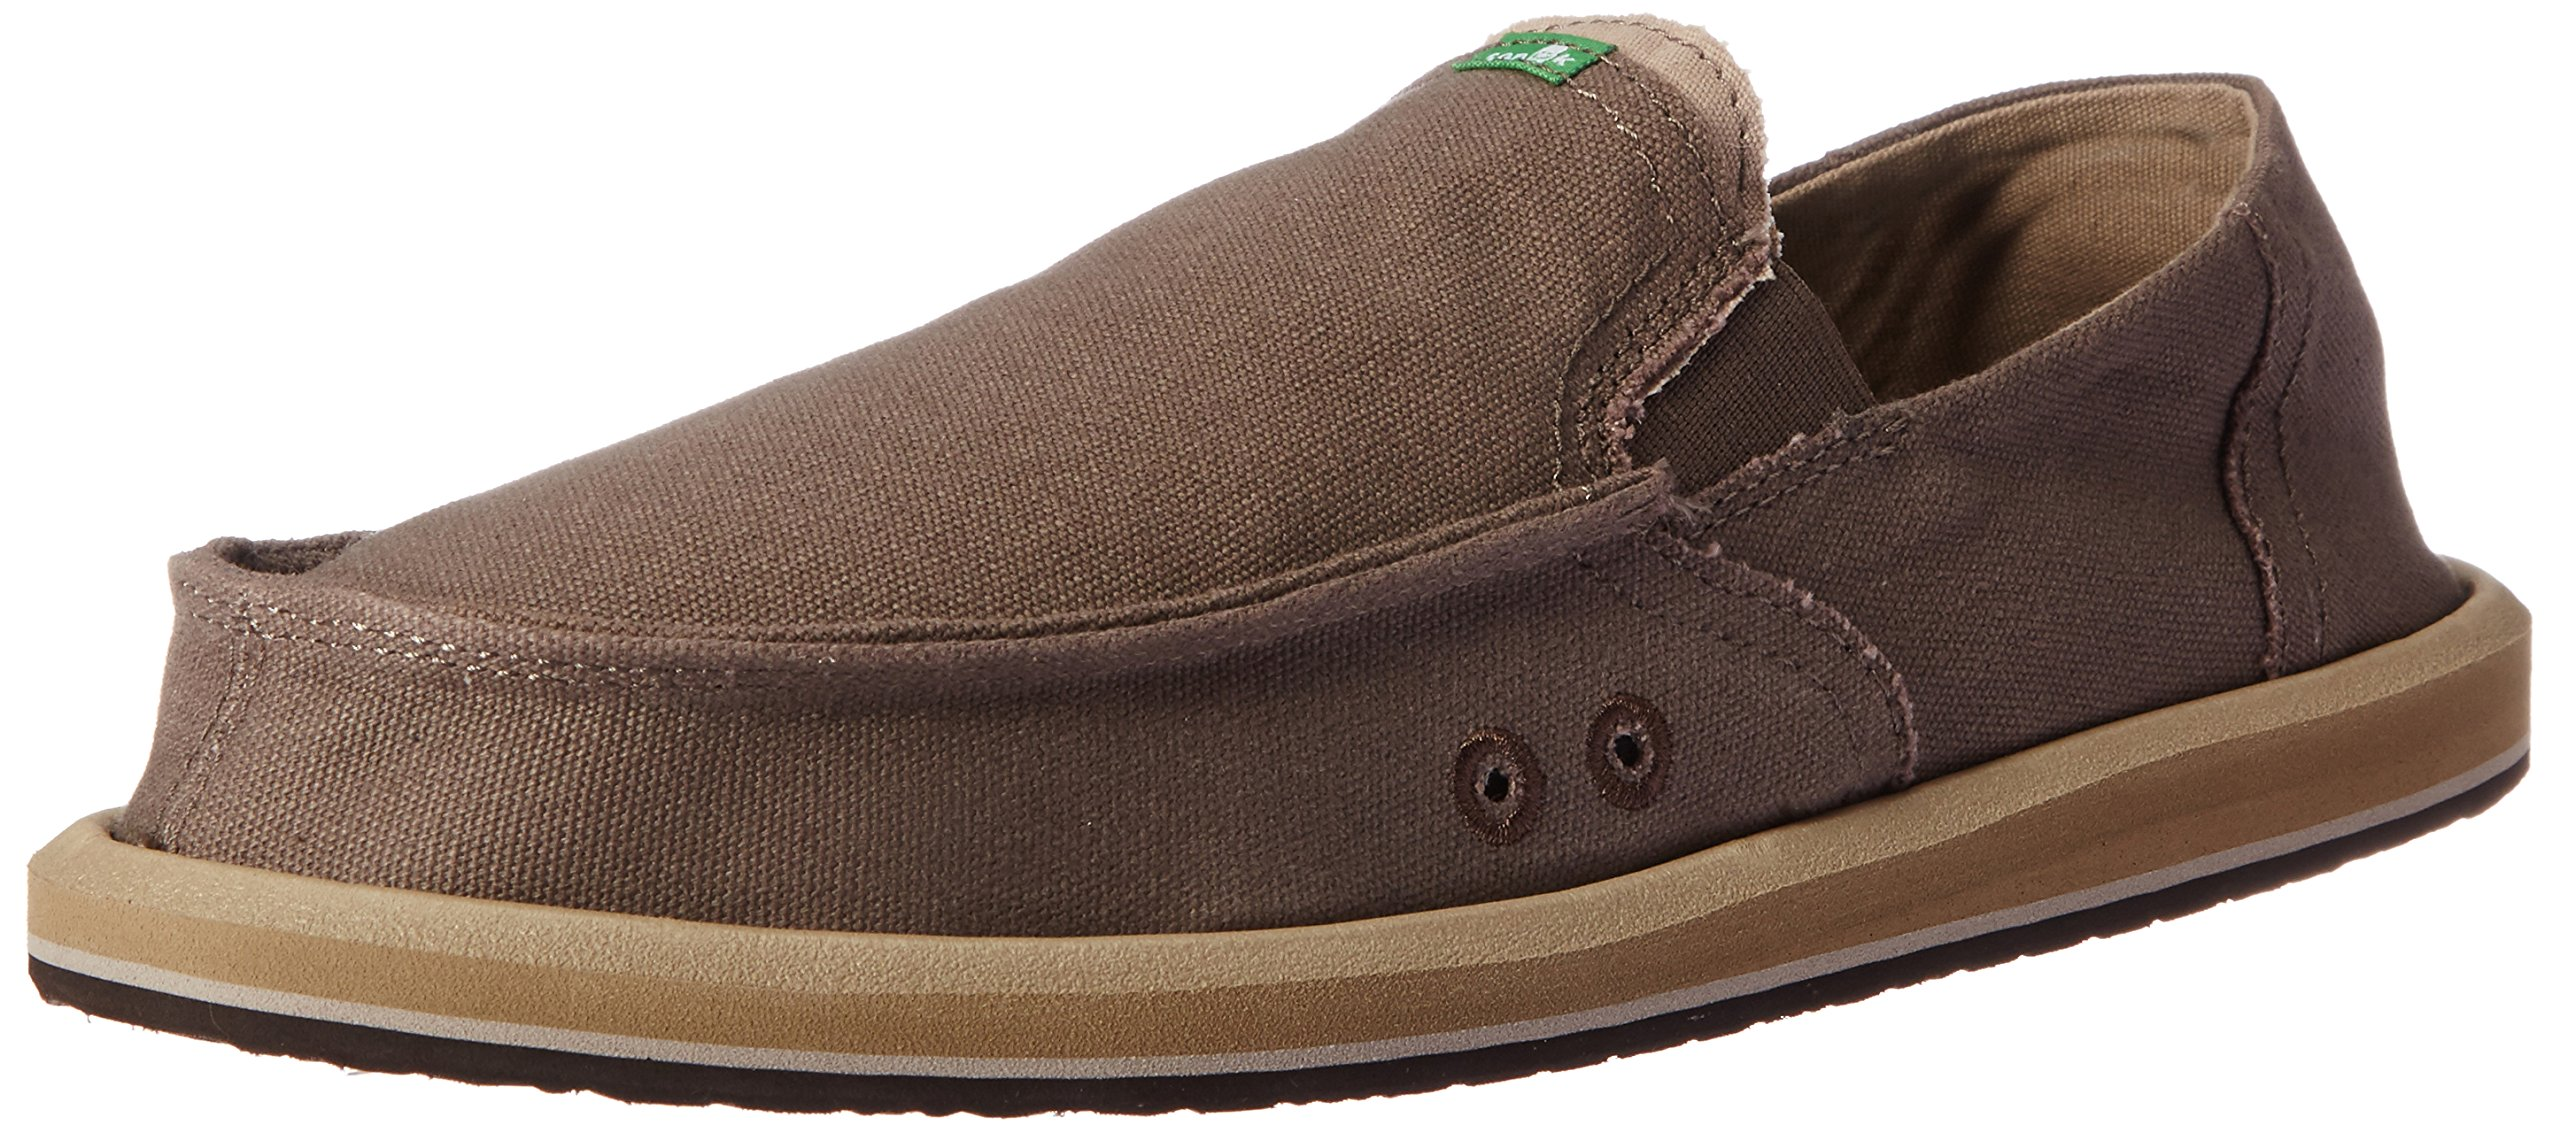 Sanuk Men's Pick Pocket Slip On, Brindle/Natural, 8 M US